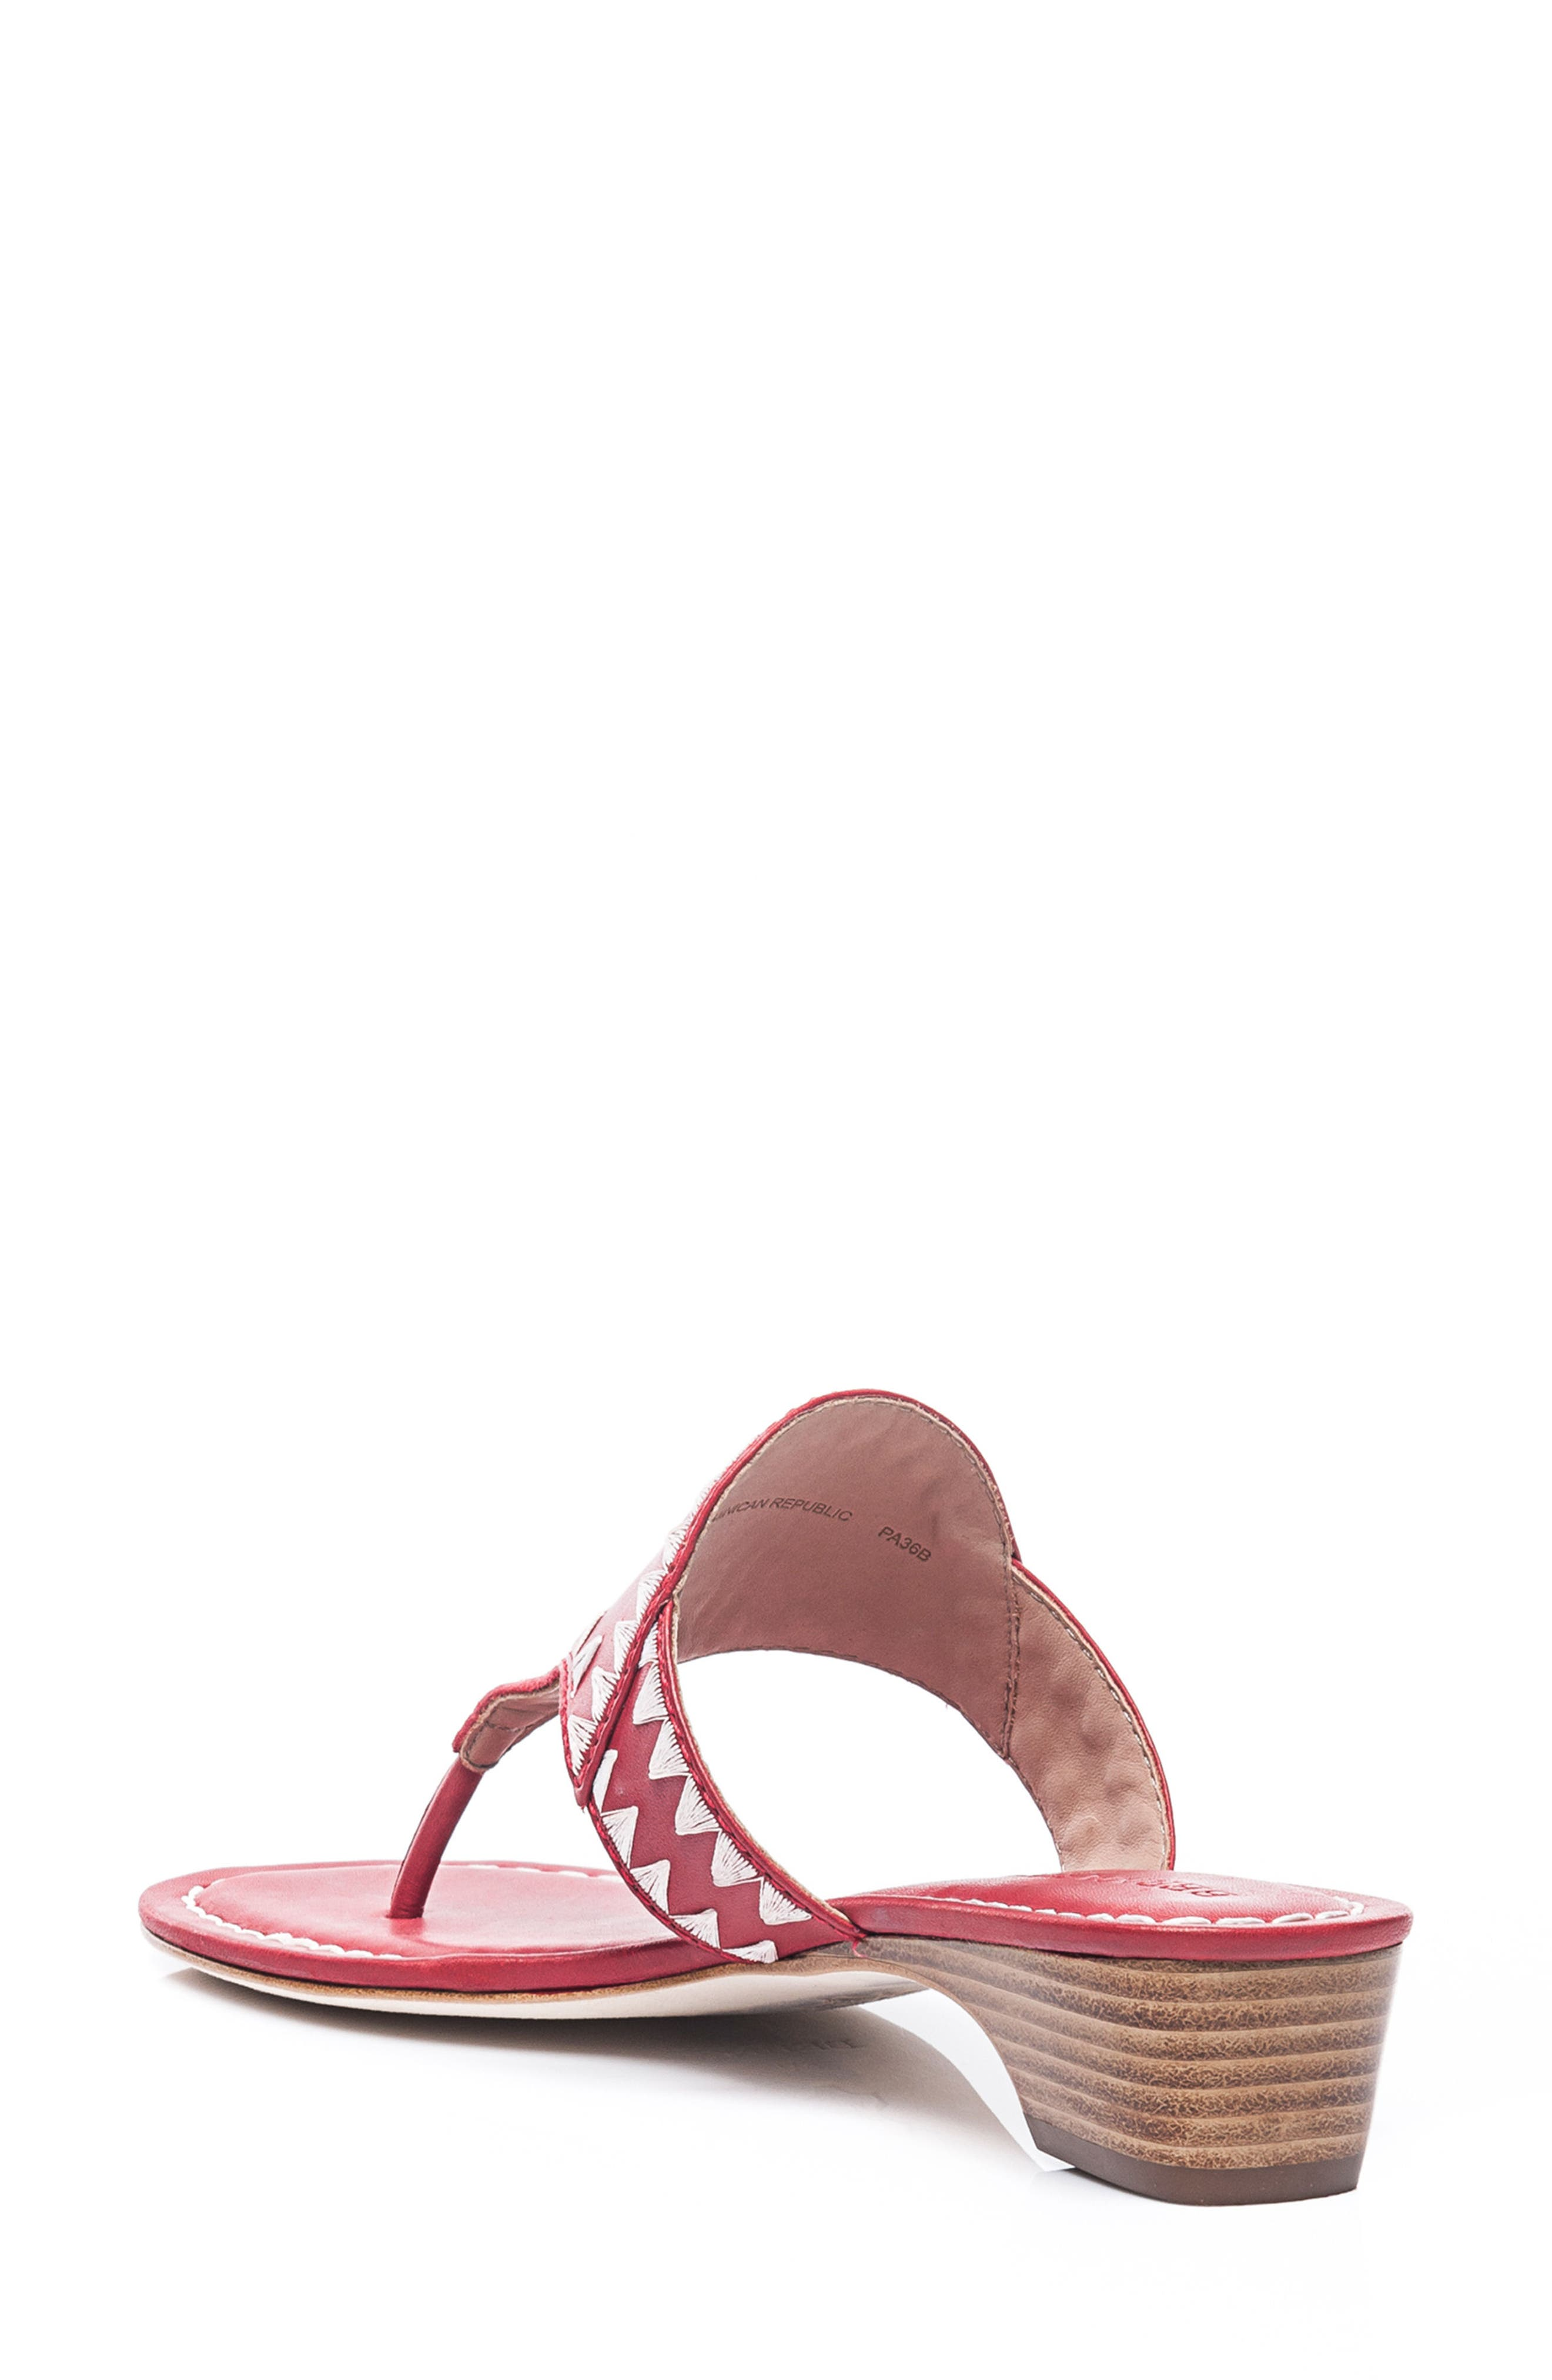 Bernardo Gabi Embroidered Sandal,                             Alternate thumbnail 2, color,                             Red Leather